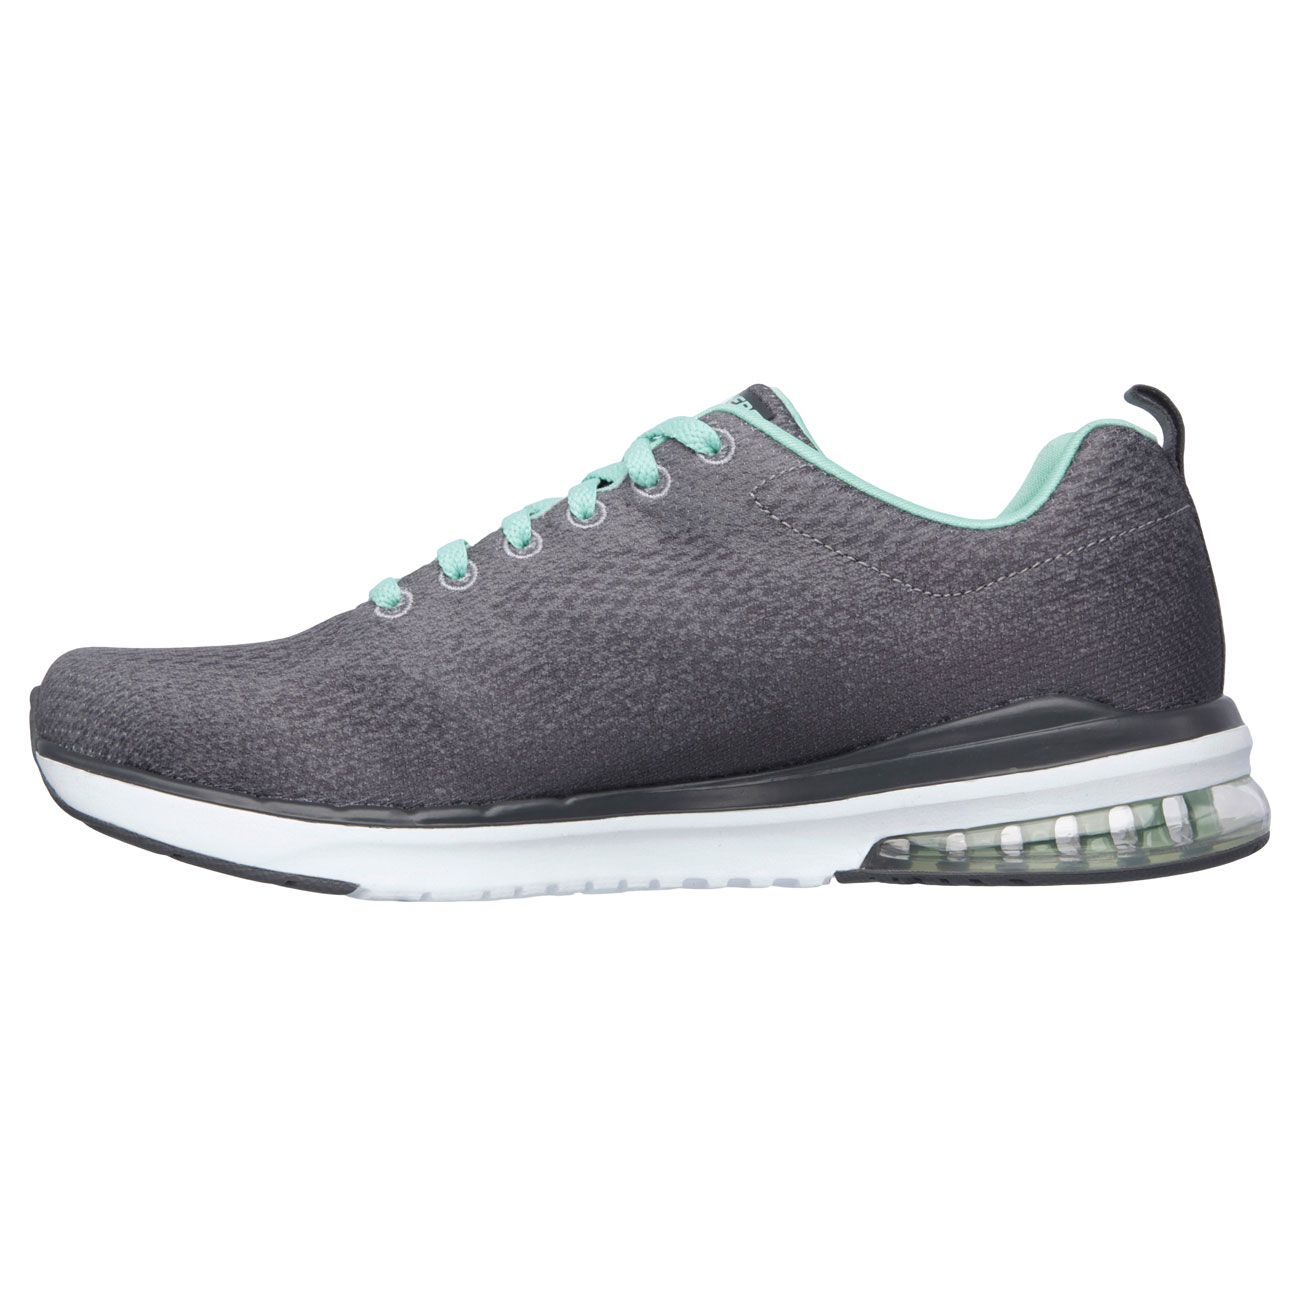 Skechers Skech Air Infinity Modern Chick Ladies Training Shoes besides Ladies Squash Clothing likewise Wilson Sixone Team Blx 16 X 18 Tennis Racket as well Puma Descendant V4 Mens Running Shoes also Ifit Vue Fitness Activity Tracker. on modern squash racket